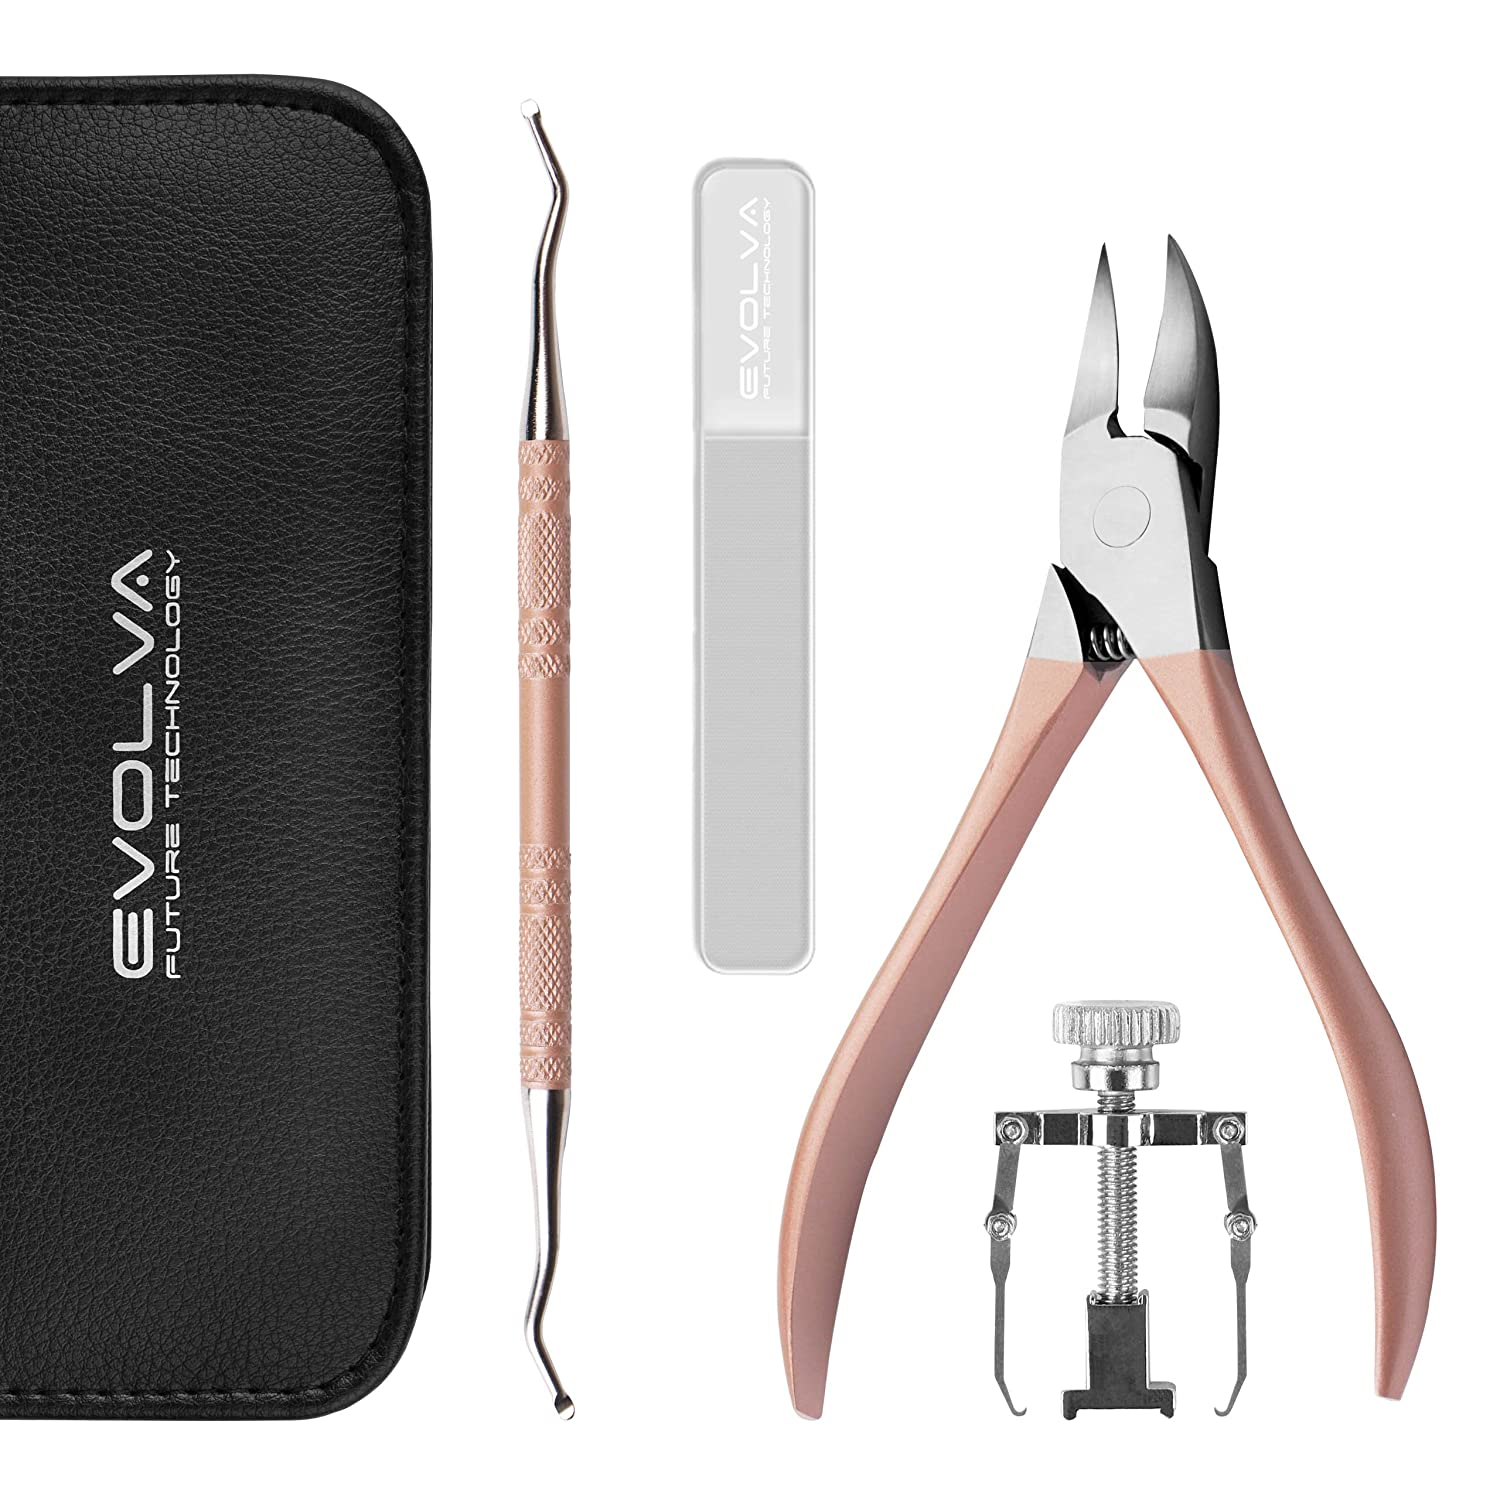 Evolva Future Technology Ingrown Toenail Tool 5-in-1 Profession Toenail Pedicure Corrector Tool with Portable Leather Case (Black)